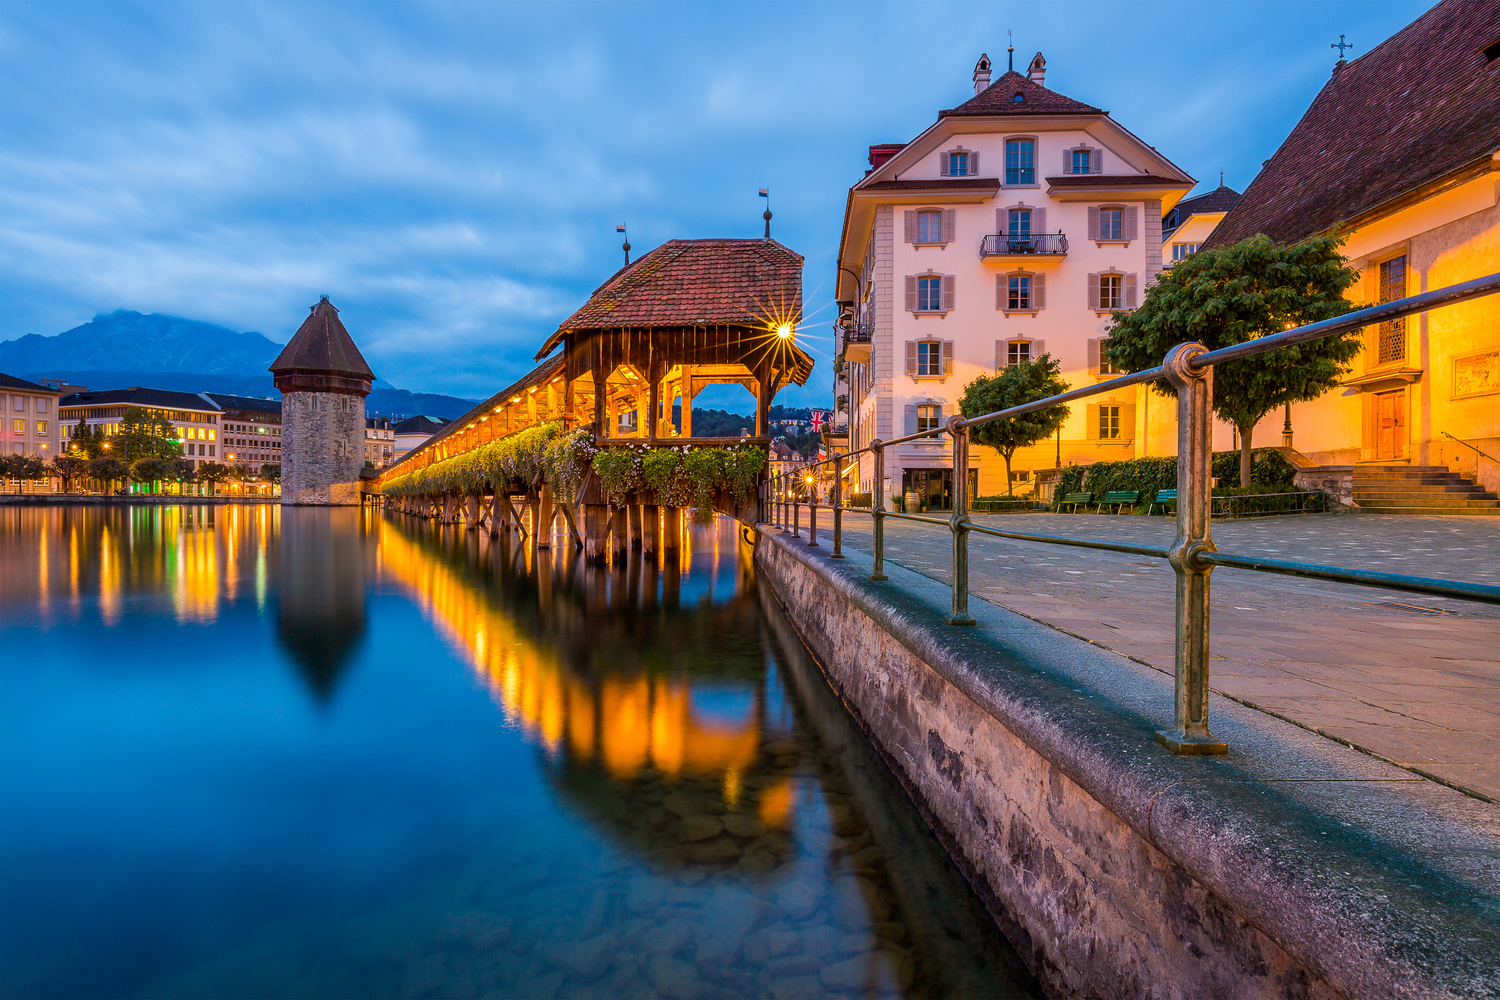 Chapel Bridge / Lucerne, Switzerland by Jeroen Hribar